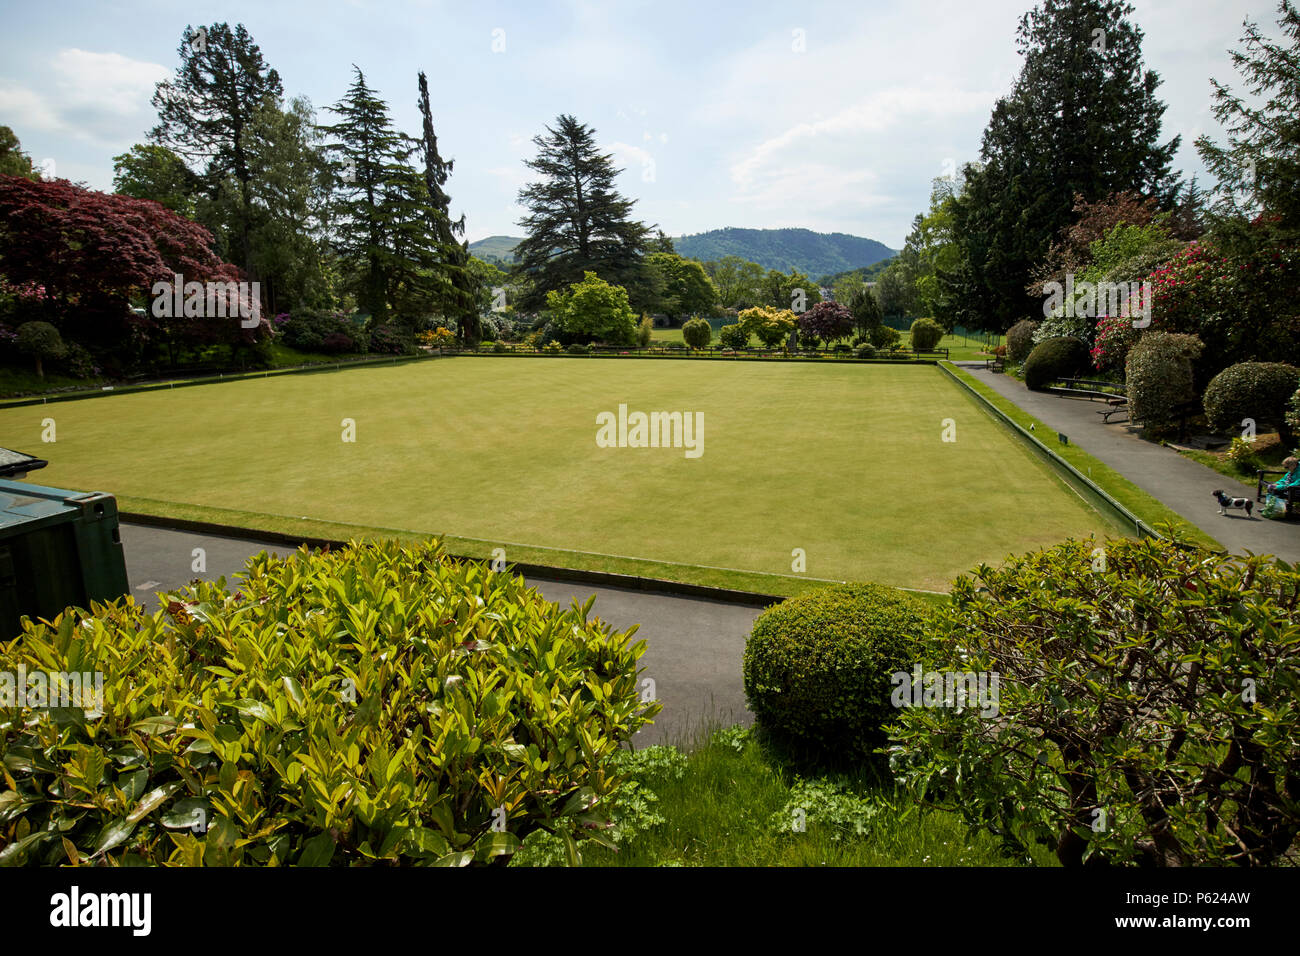 lawn bowls bowling green in upper fitz park Keswick Lake District Cumbria England UK - Stock Image